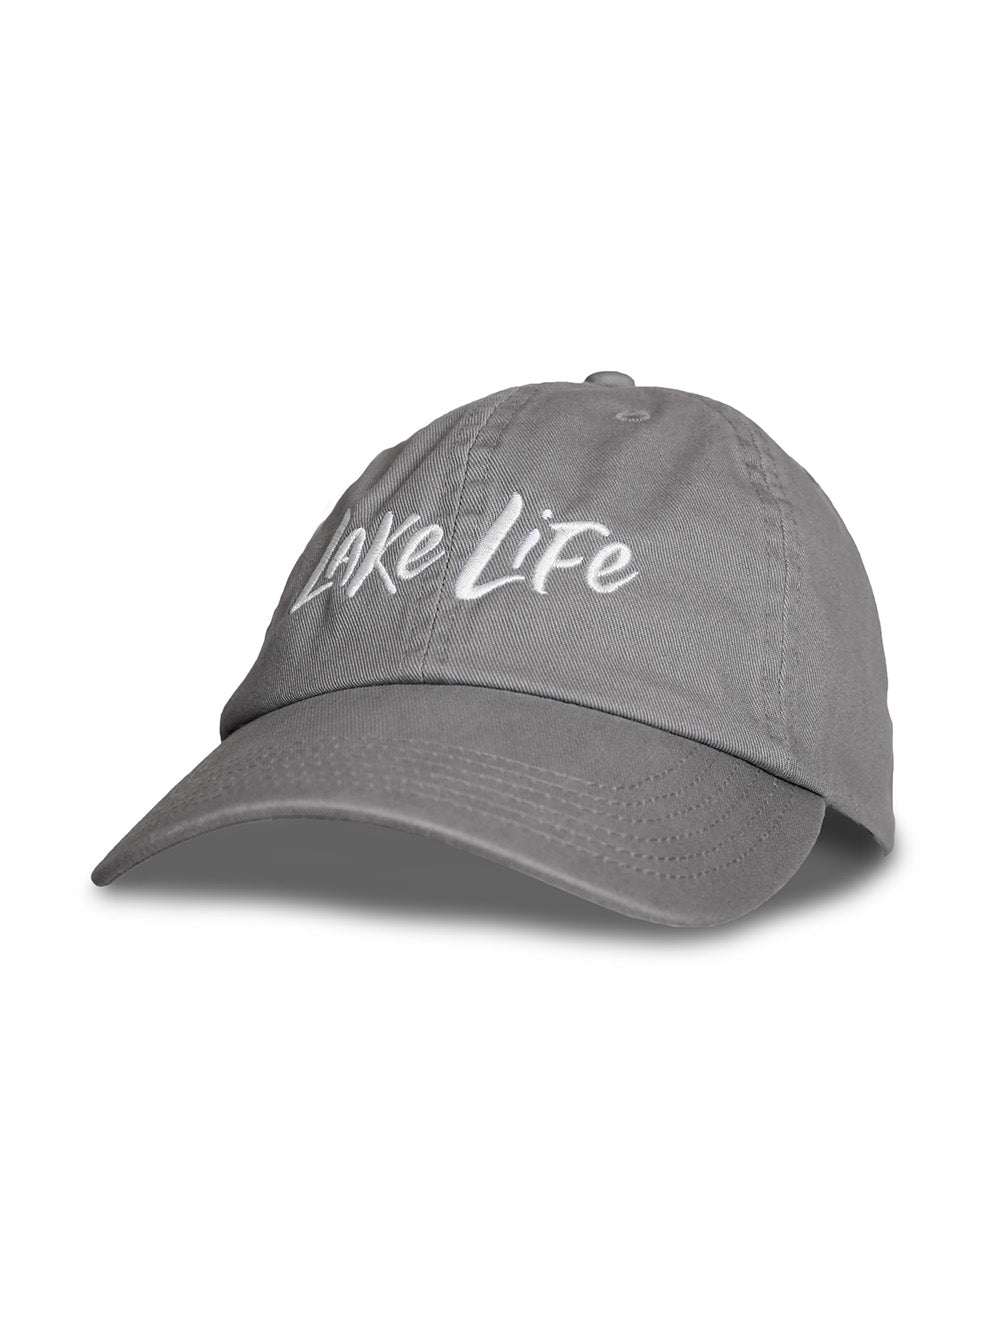 Lake Life Baseball Hat